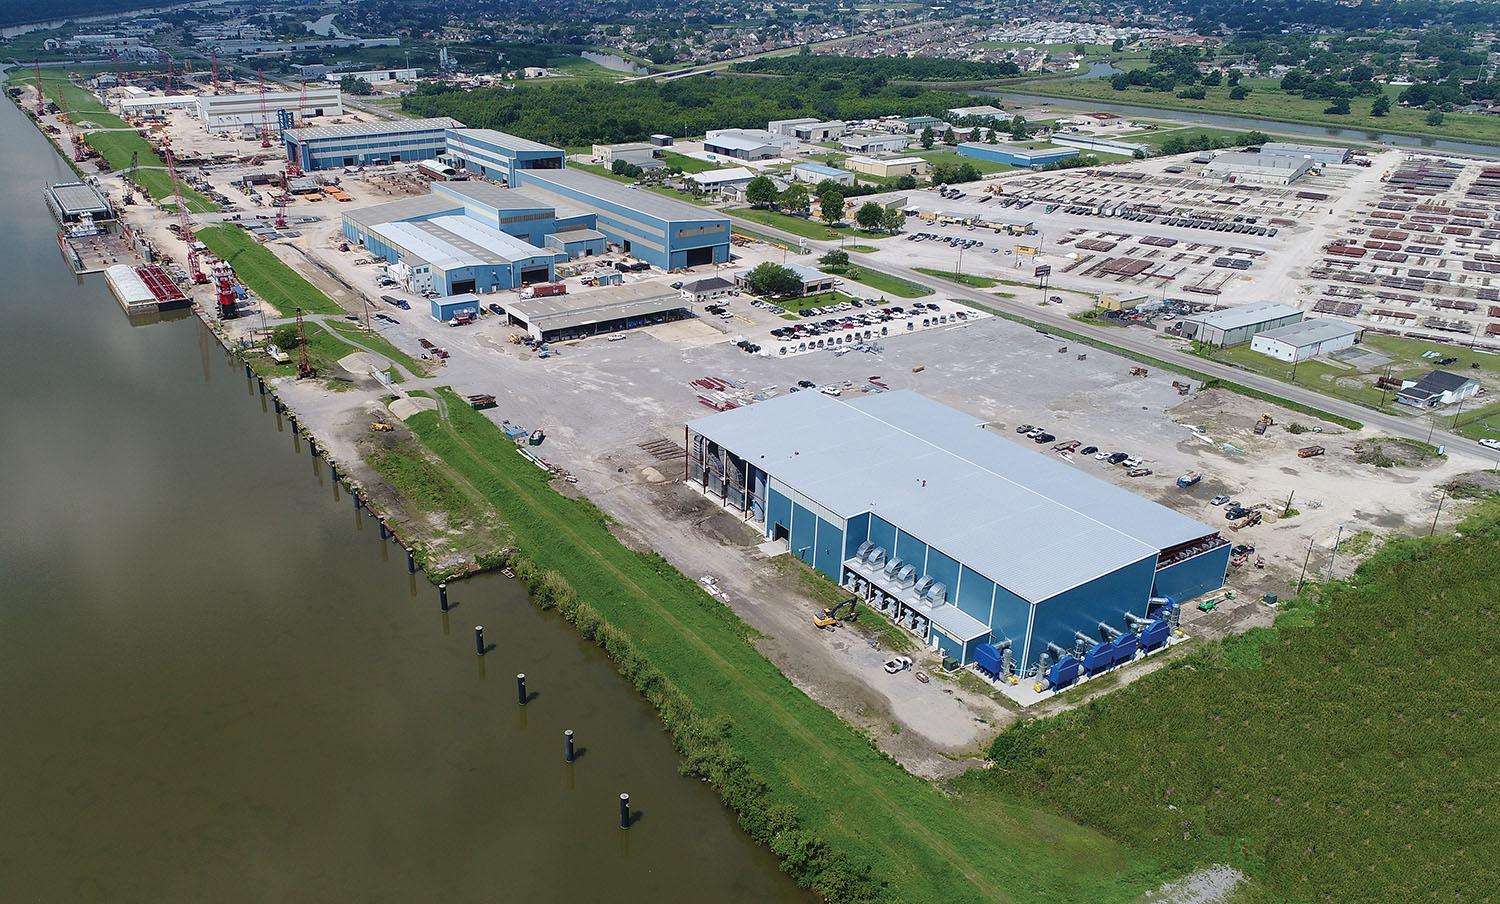 Aerial view of C&C Marine & Repair, with new blast and paint facility in the foreground. (Photo courtesy of C&C Marine & Repair)